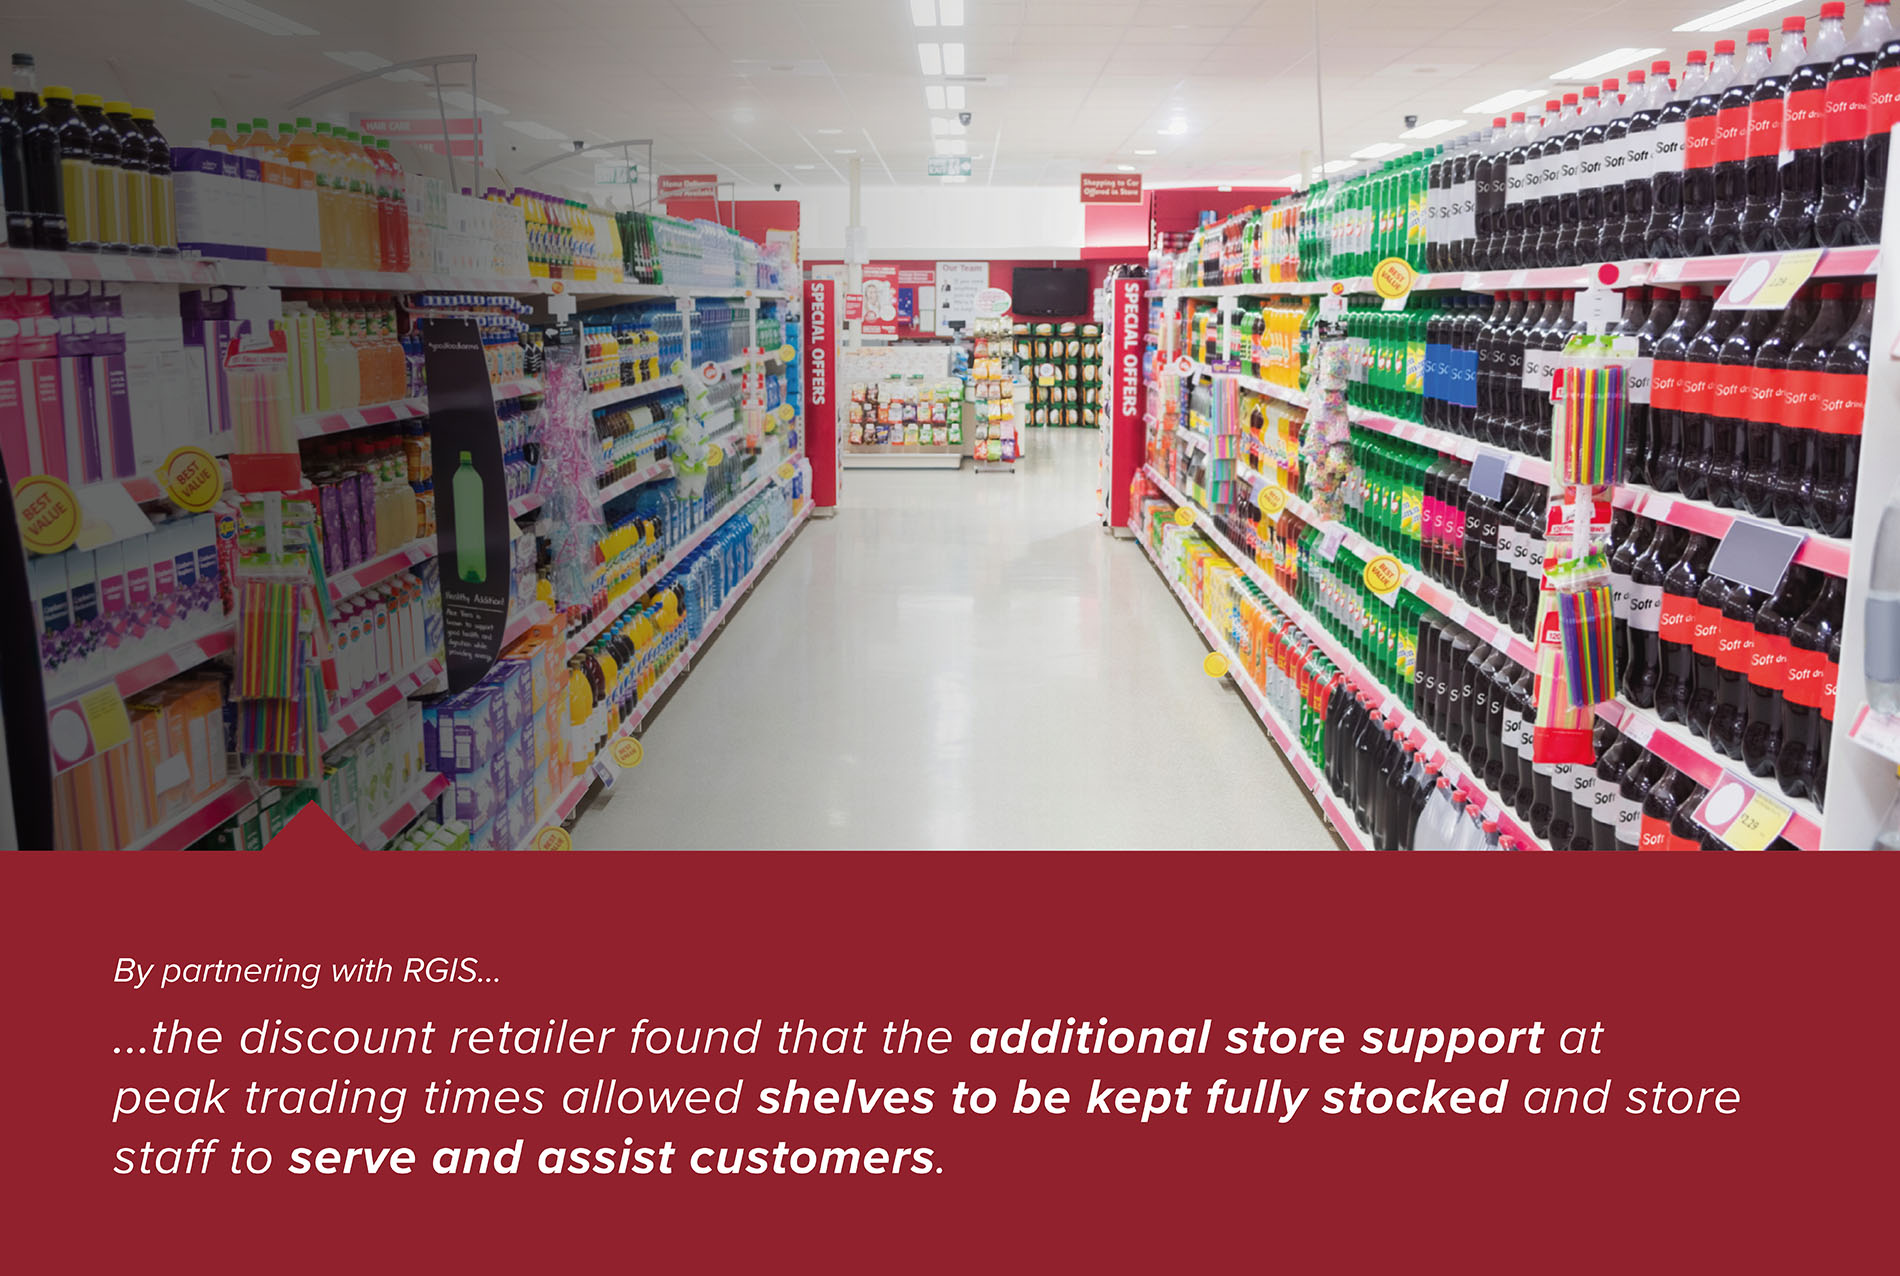 Peak Trading Store Support Keeping Stock Replenished on Shelves